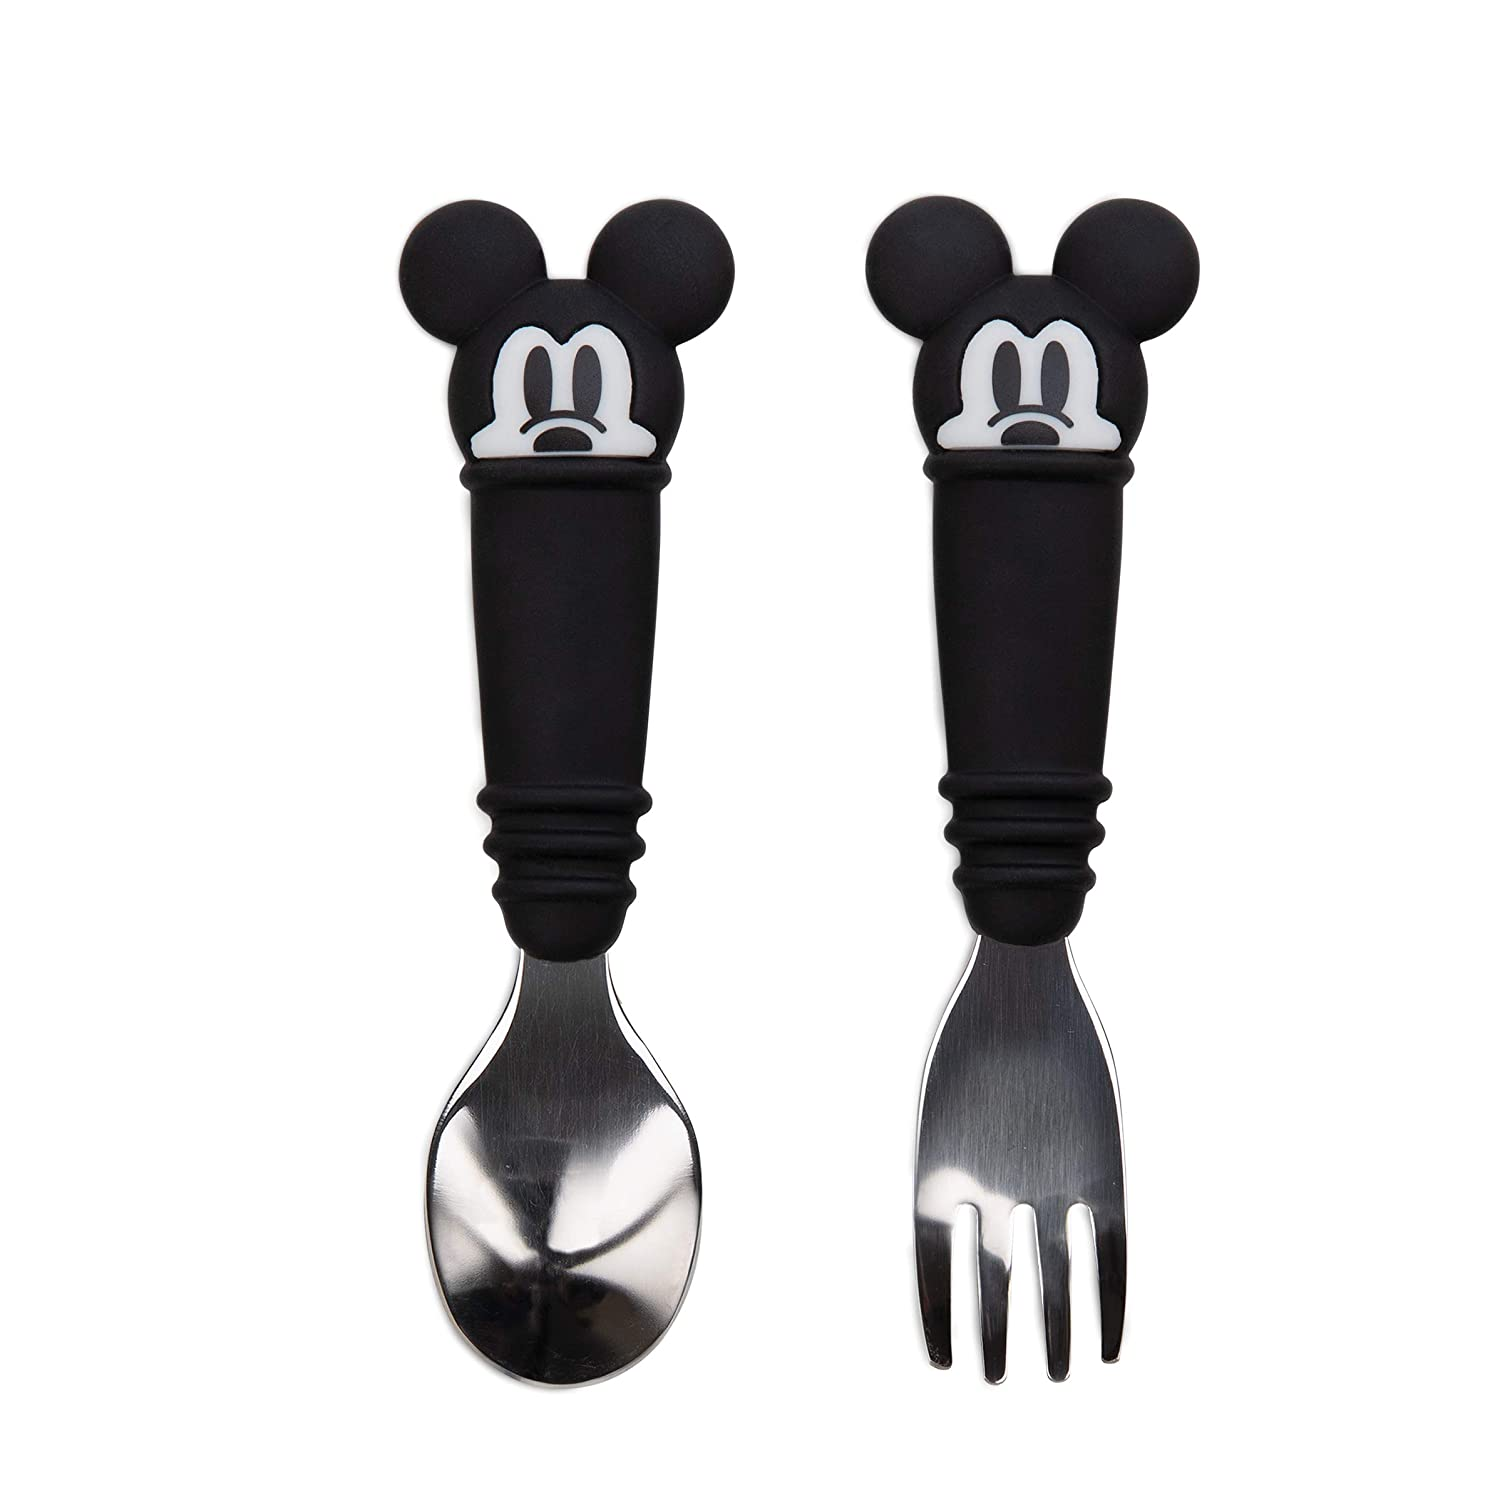 Bumkins Utensils, Disney Silicone and Stainless Steel Baby Fork and Spoon Set, Toddler Silverware, Self Feeding – Mickey Mouse